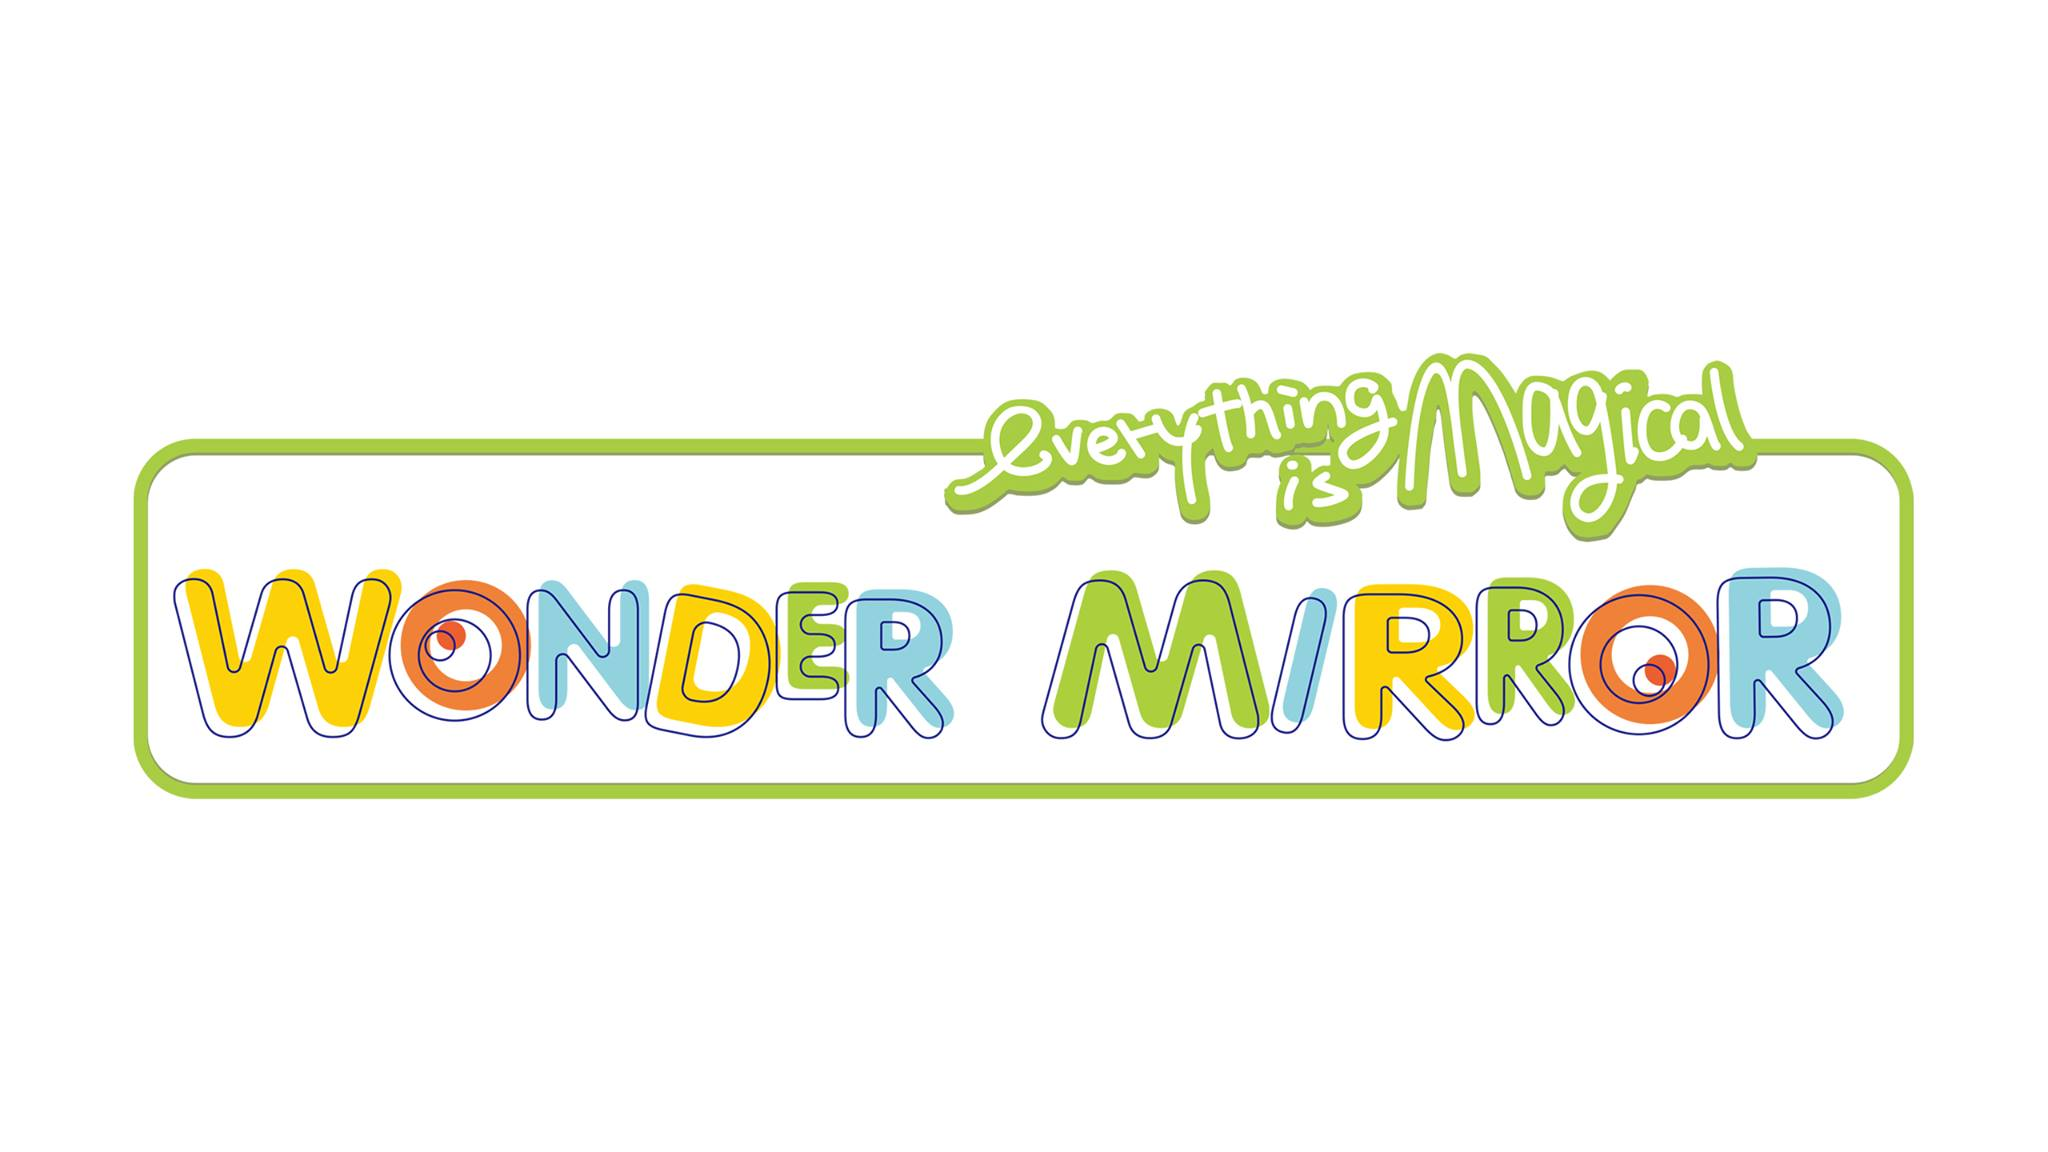 Wonder Painter [FREE] iOS App Review| Anything you draw becomes